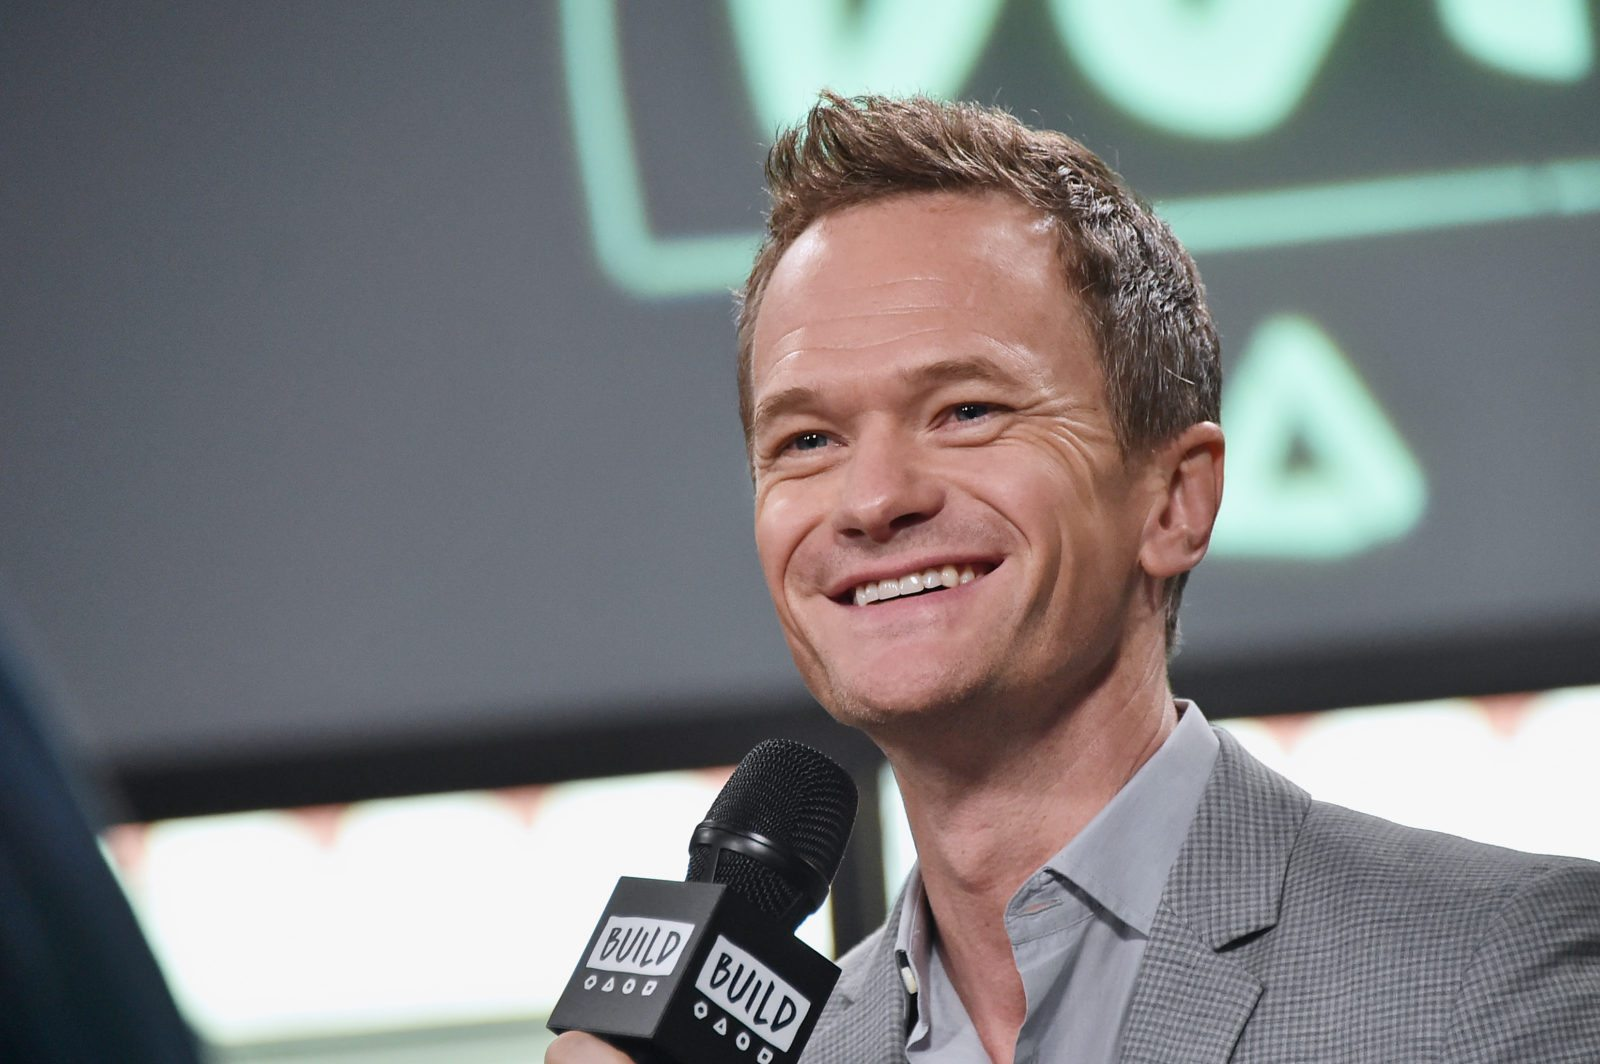 How I Met Your Mother star Neil Patrick Harris says he's no gay icon